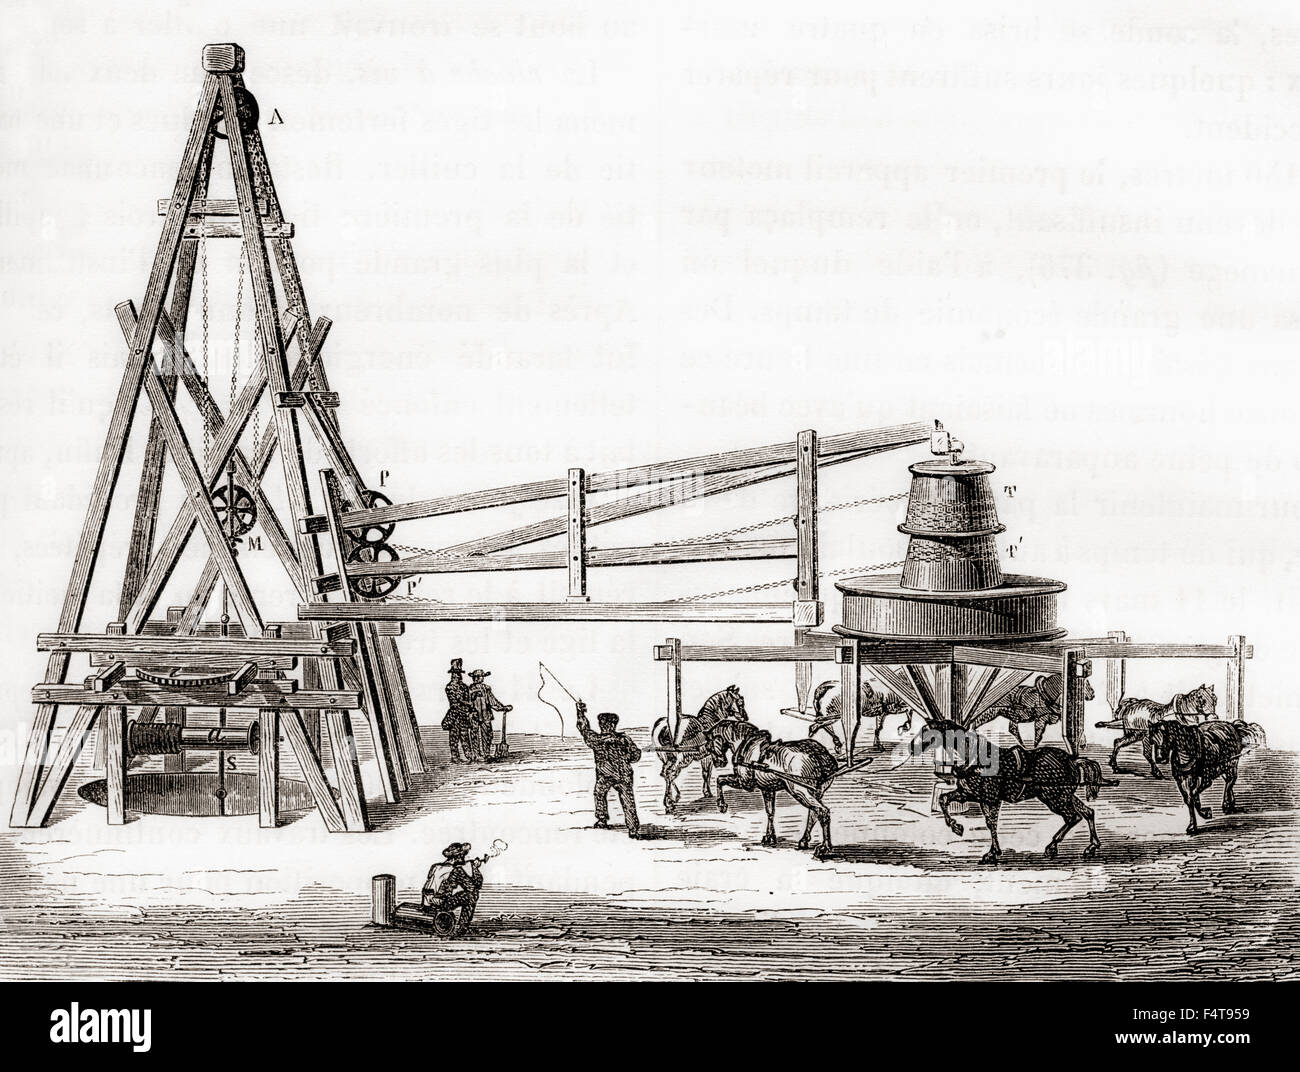 Workers using the carousel and winch to drill the artesian wells at Grenelle, France in the 19th century. - Stock Image